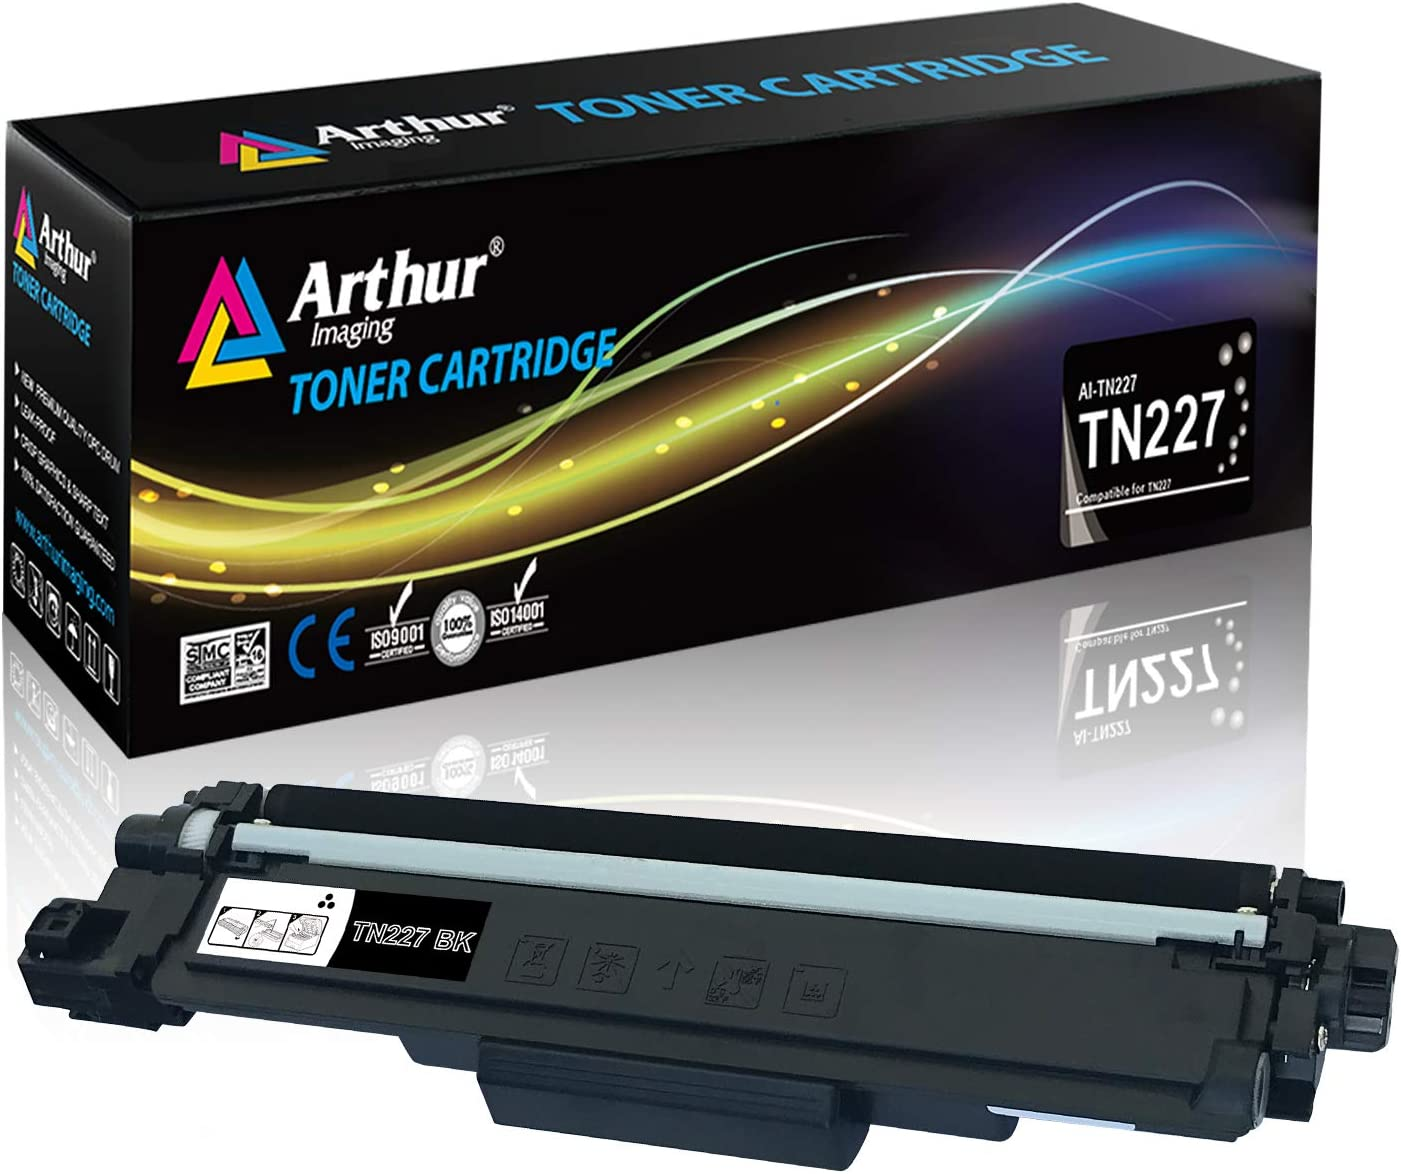 Arthur Imaging with CHIP Compatible Toner Cartridge Replacement for Brother Tn227(Black, 1 Pack) (TN227BK)